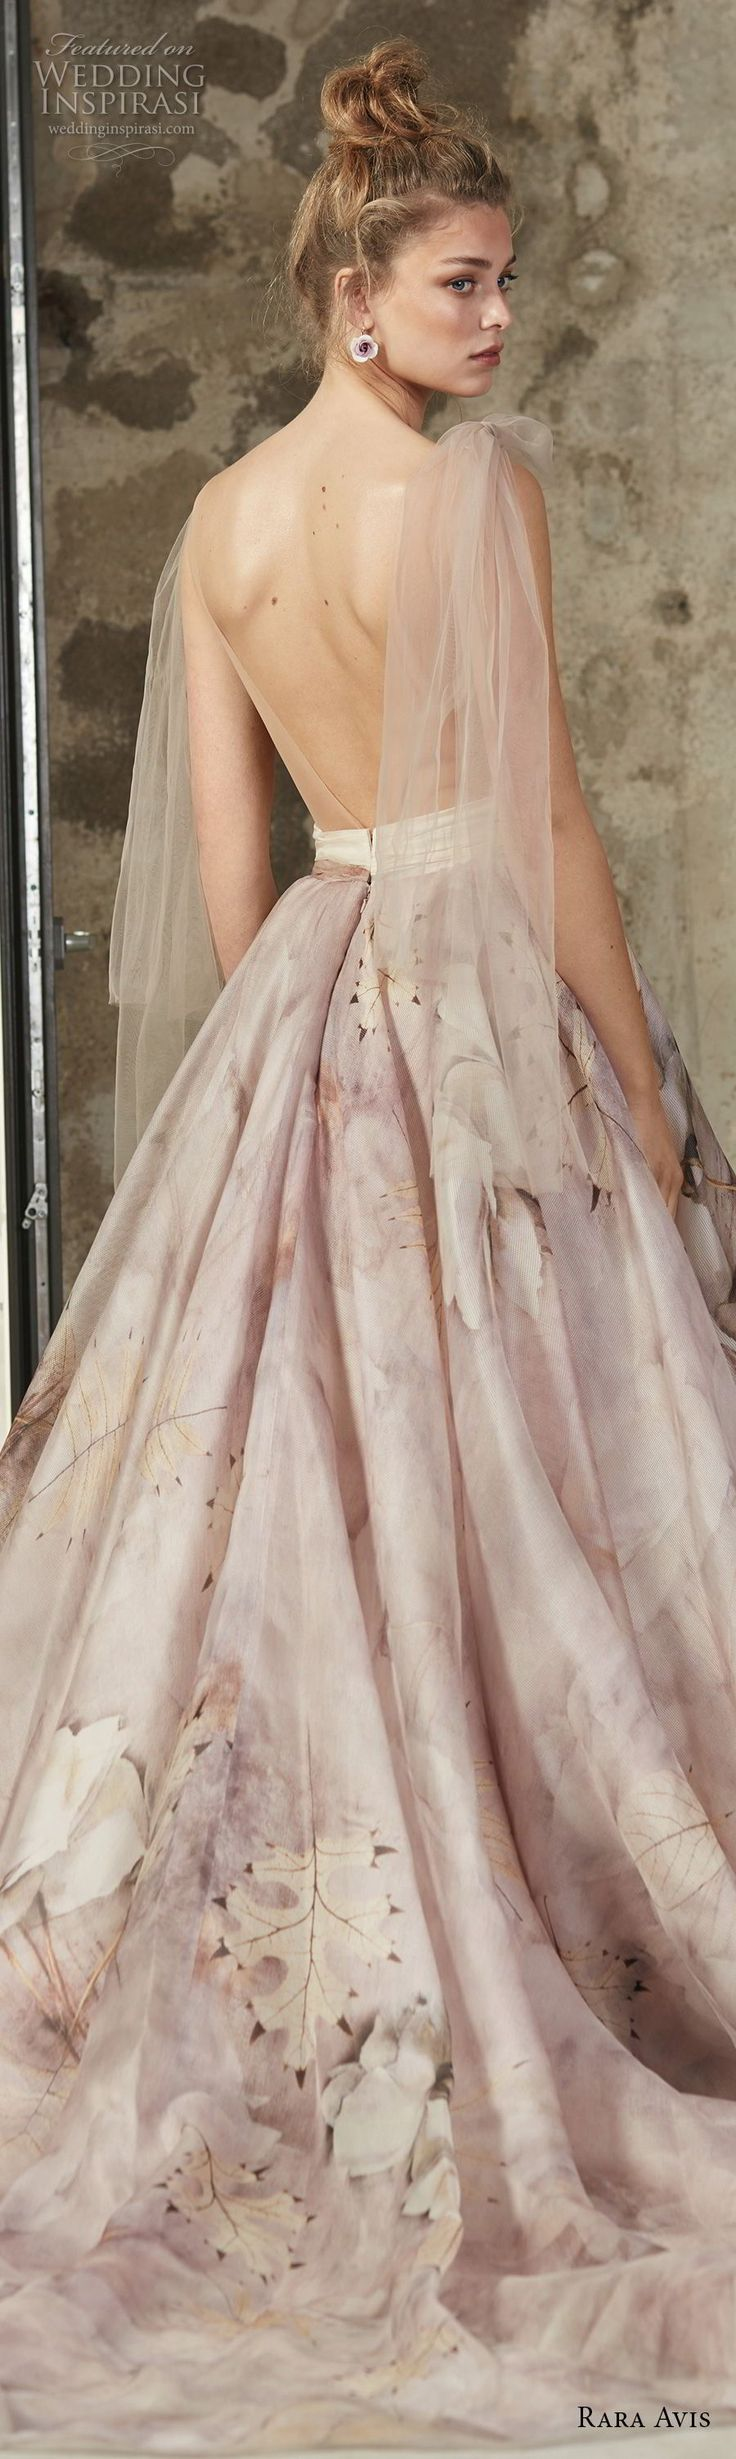 rara avis 2017 bridal sleeveless deep v neck unembellished floral printed romantic pastel purple a line wedding dress open back medium train (7) blv -- Rara Avis 2017 Wedding Dresses